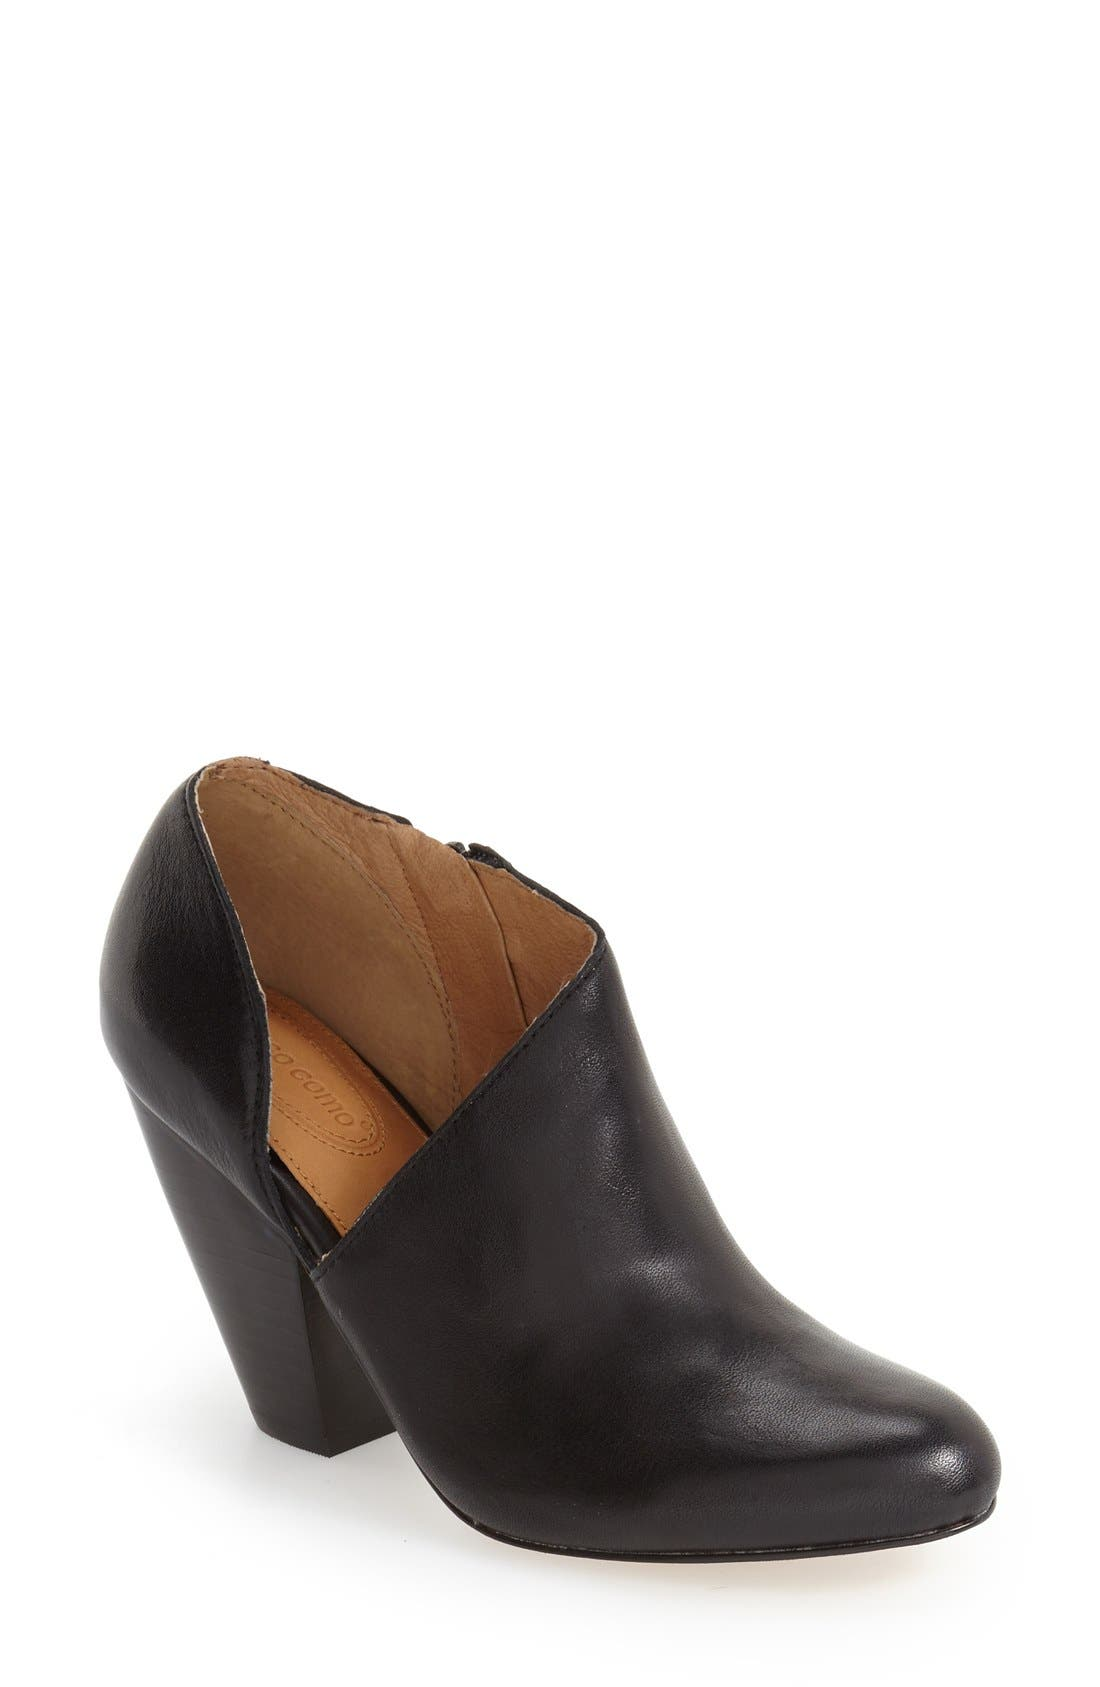 'Yonkers' Almond Toe Cutout Bootie,                         Main,                         color, 004